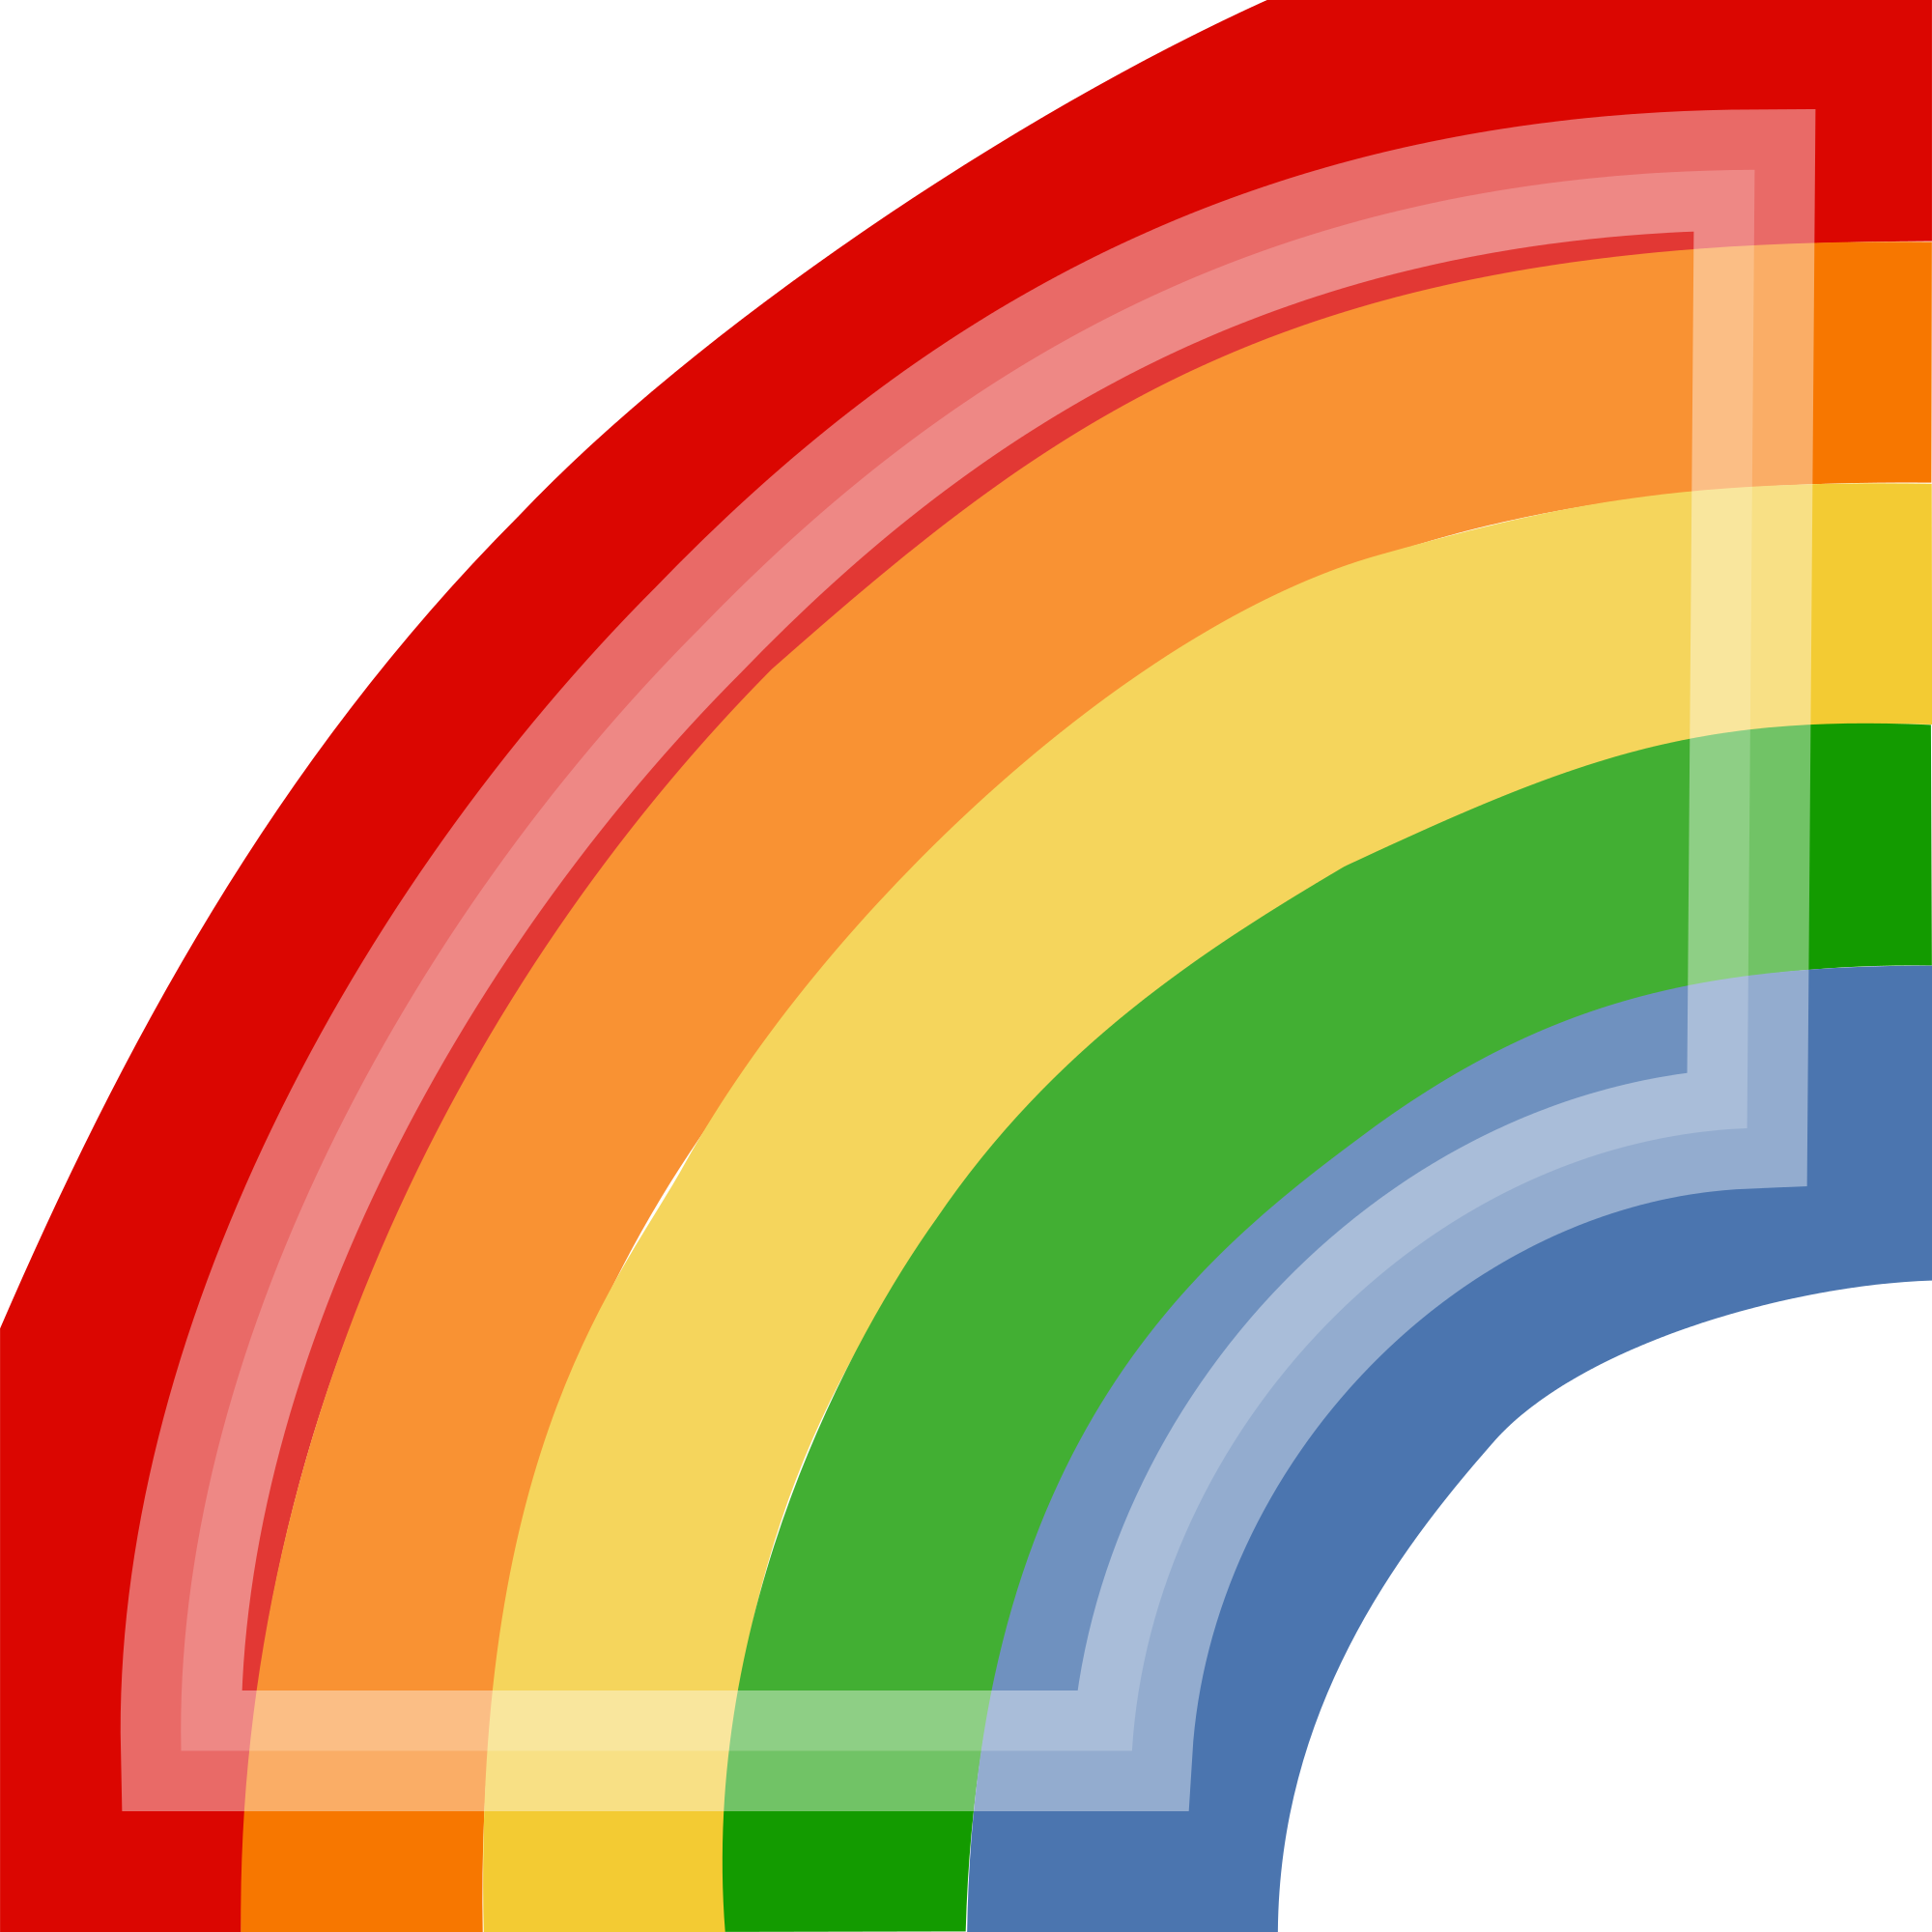 Rainbow svg #5, Download drawings